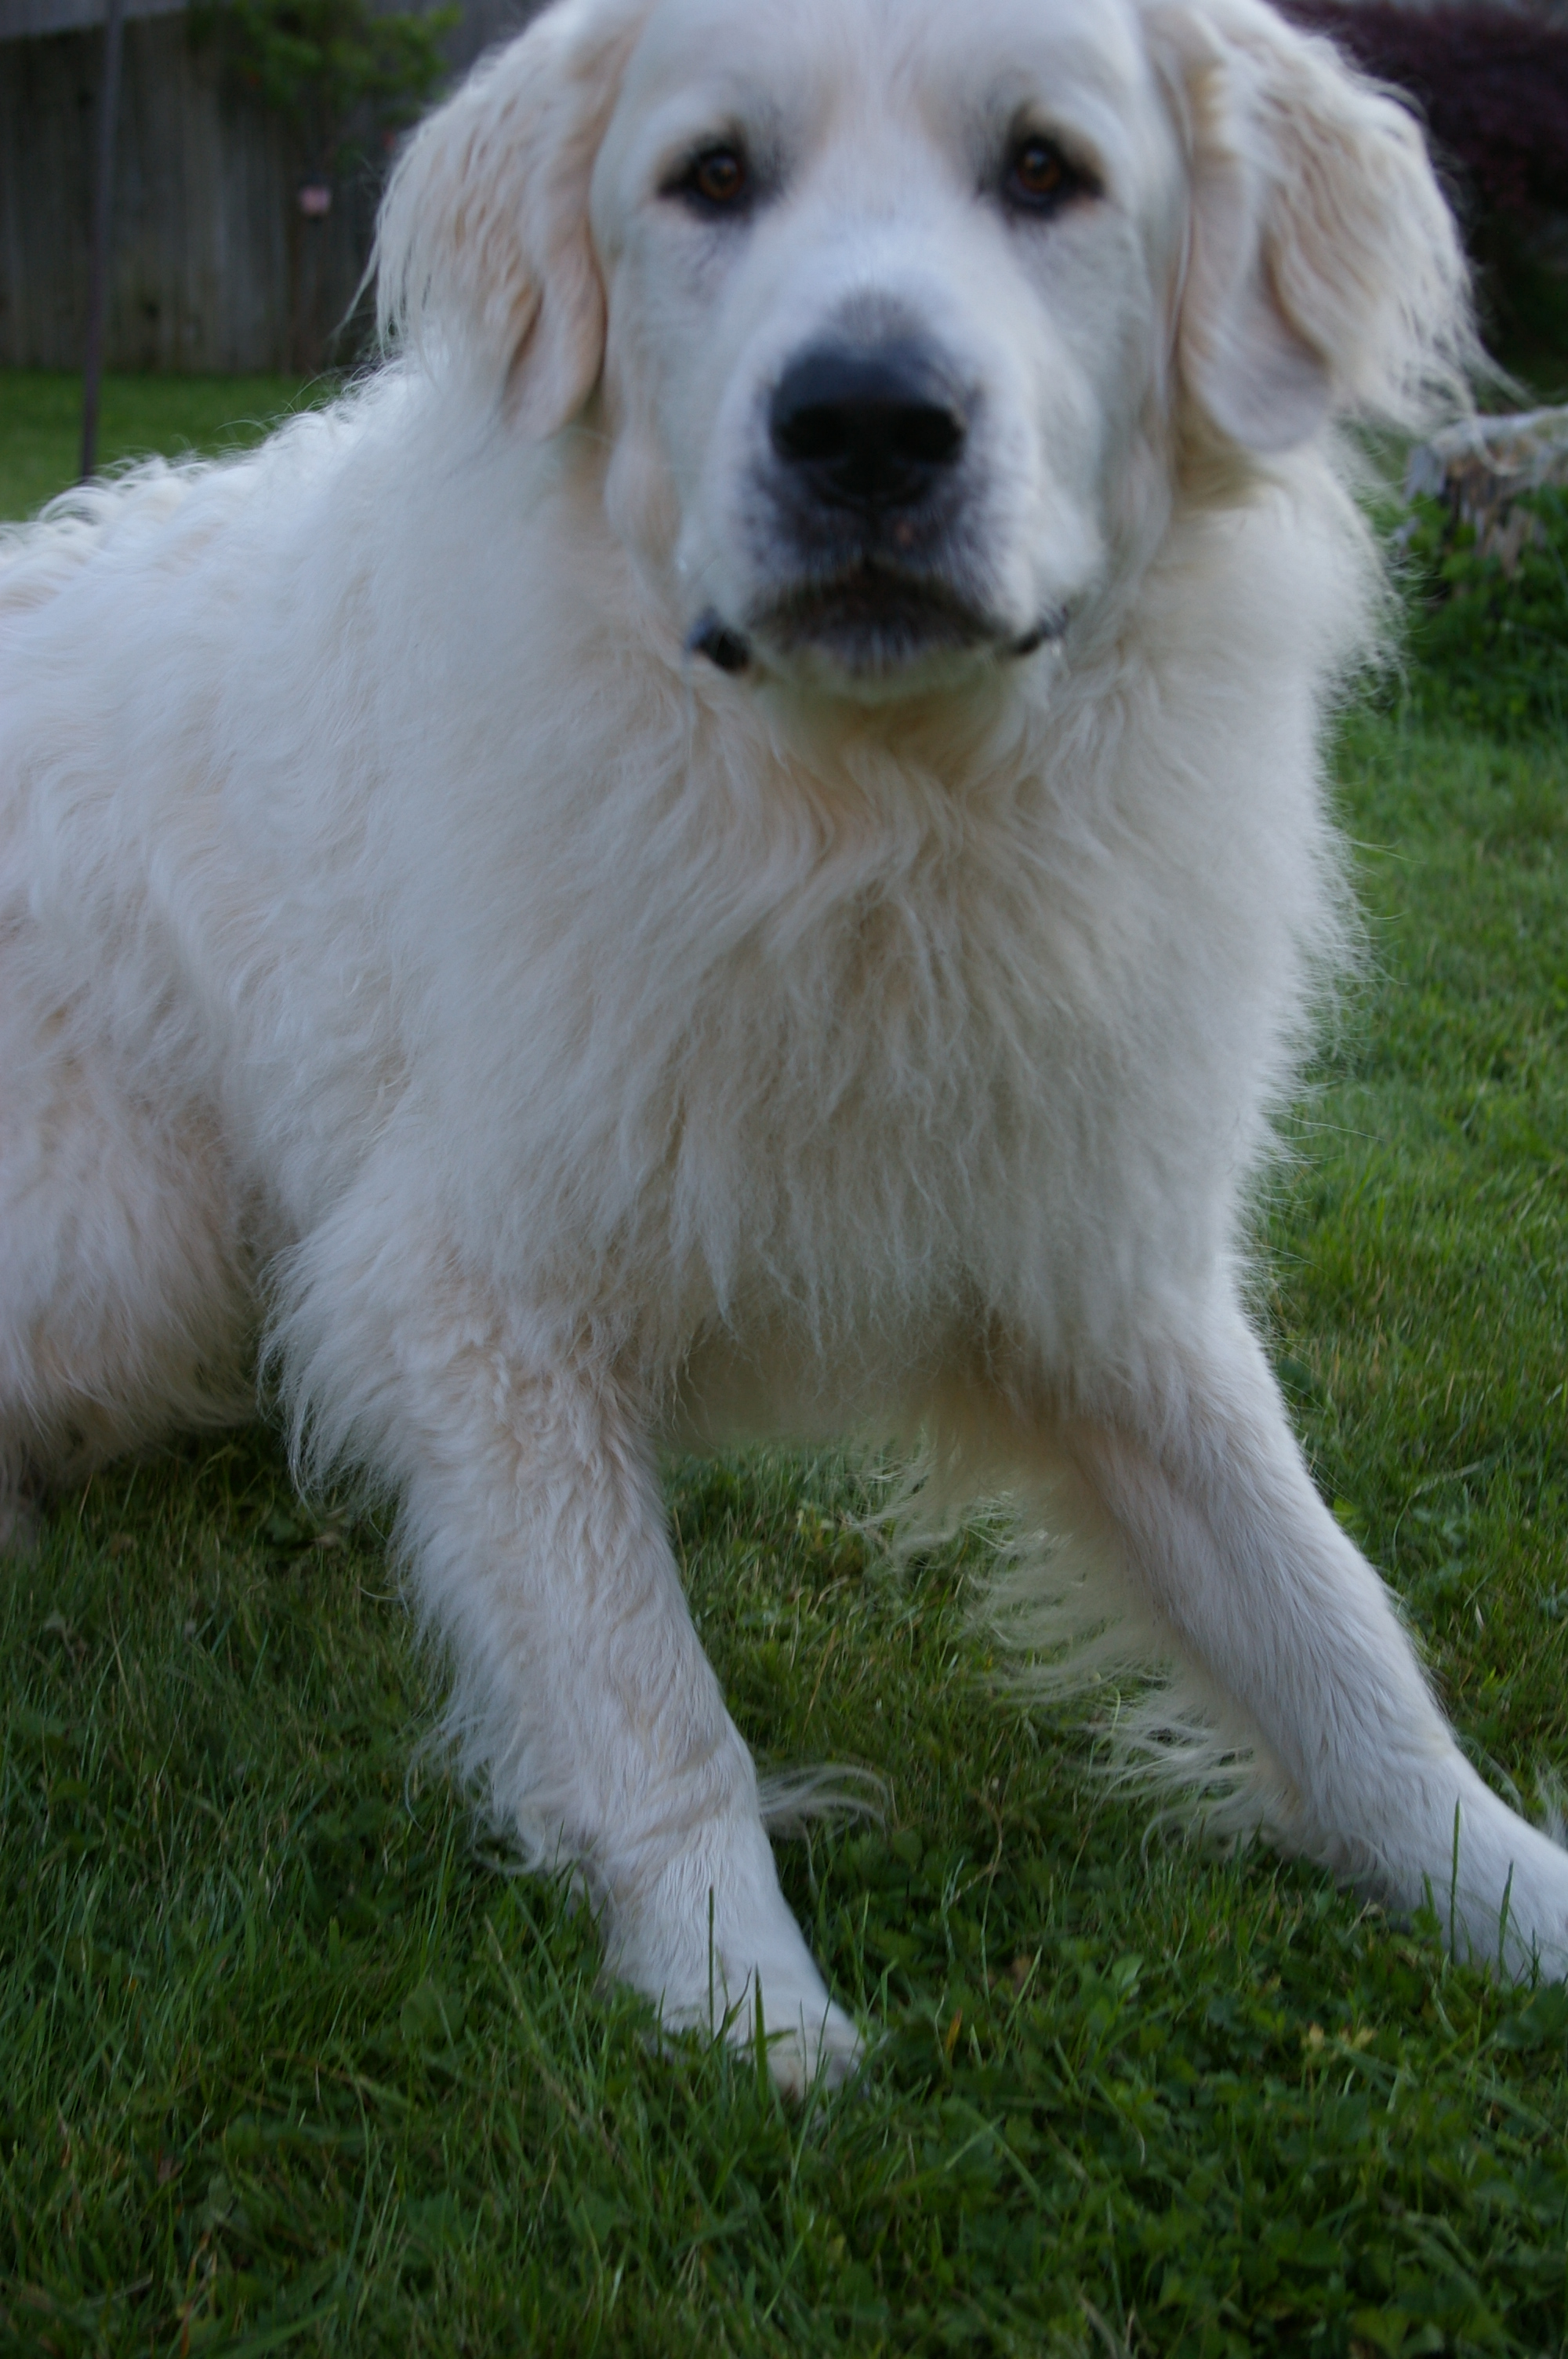 cute-great-pyrenees-dog-photo.jpg